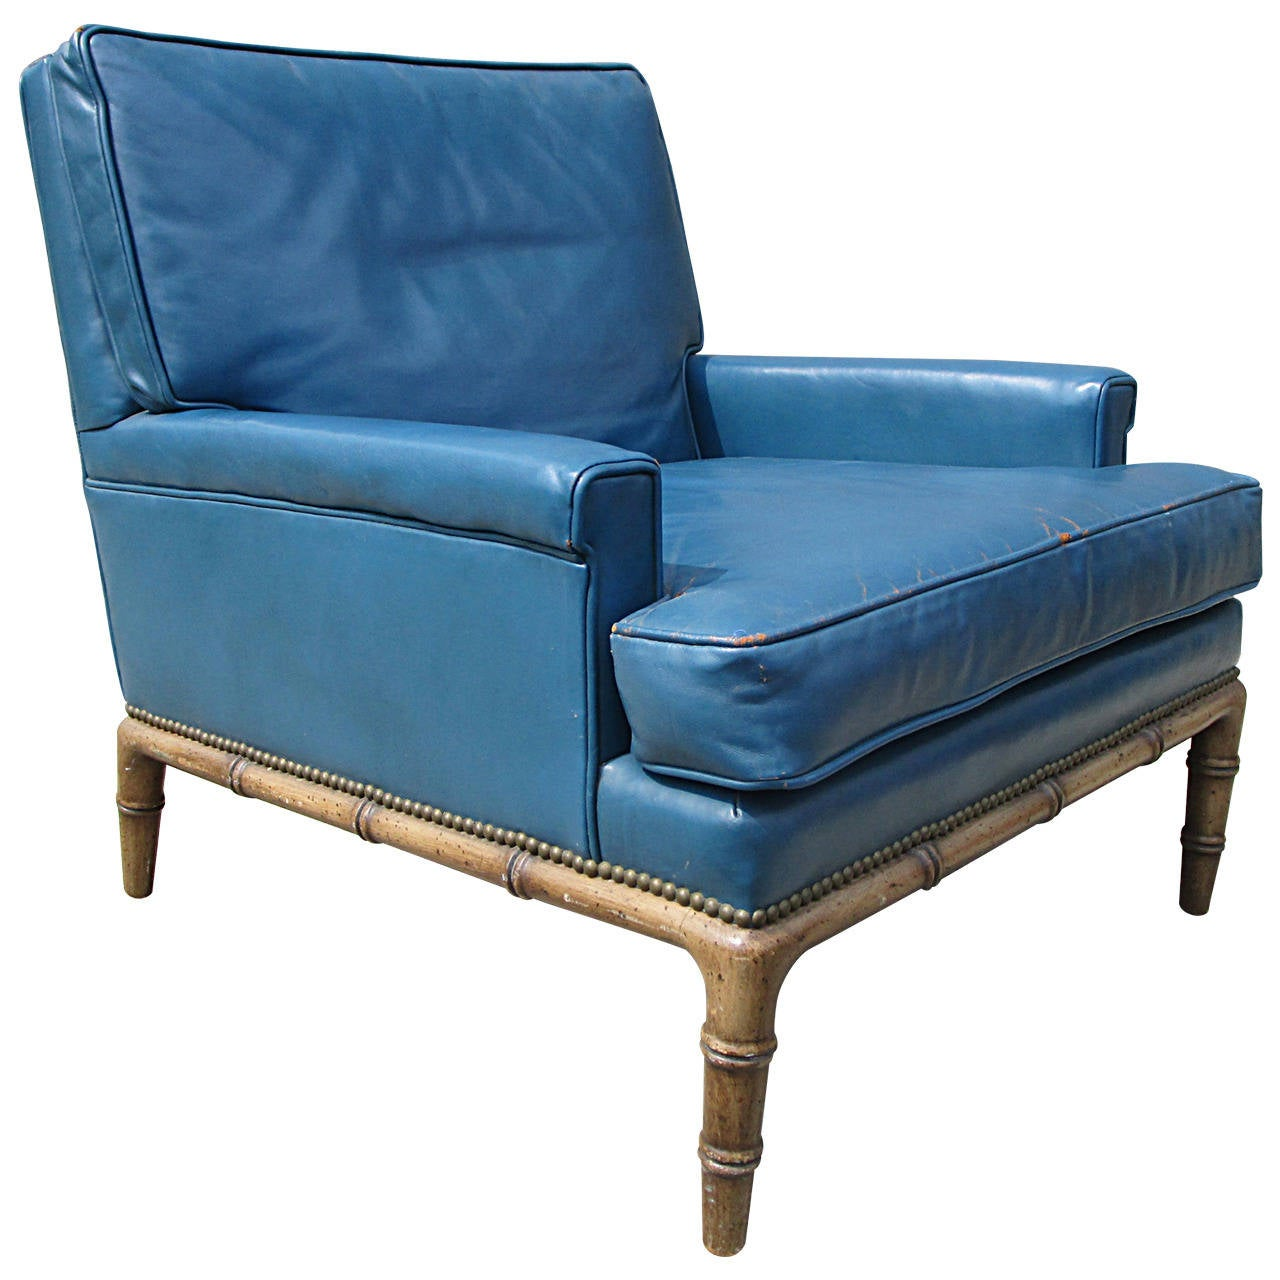 Blue Leather Club Chair by Erwin-Lambeth